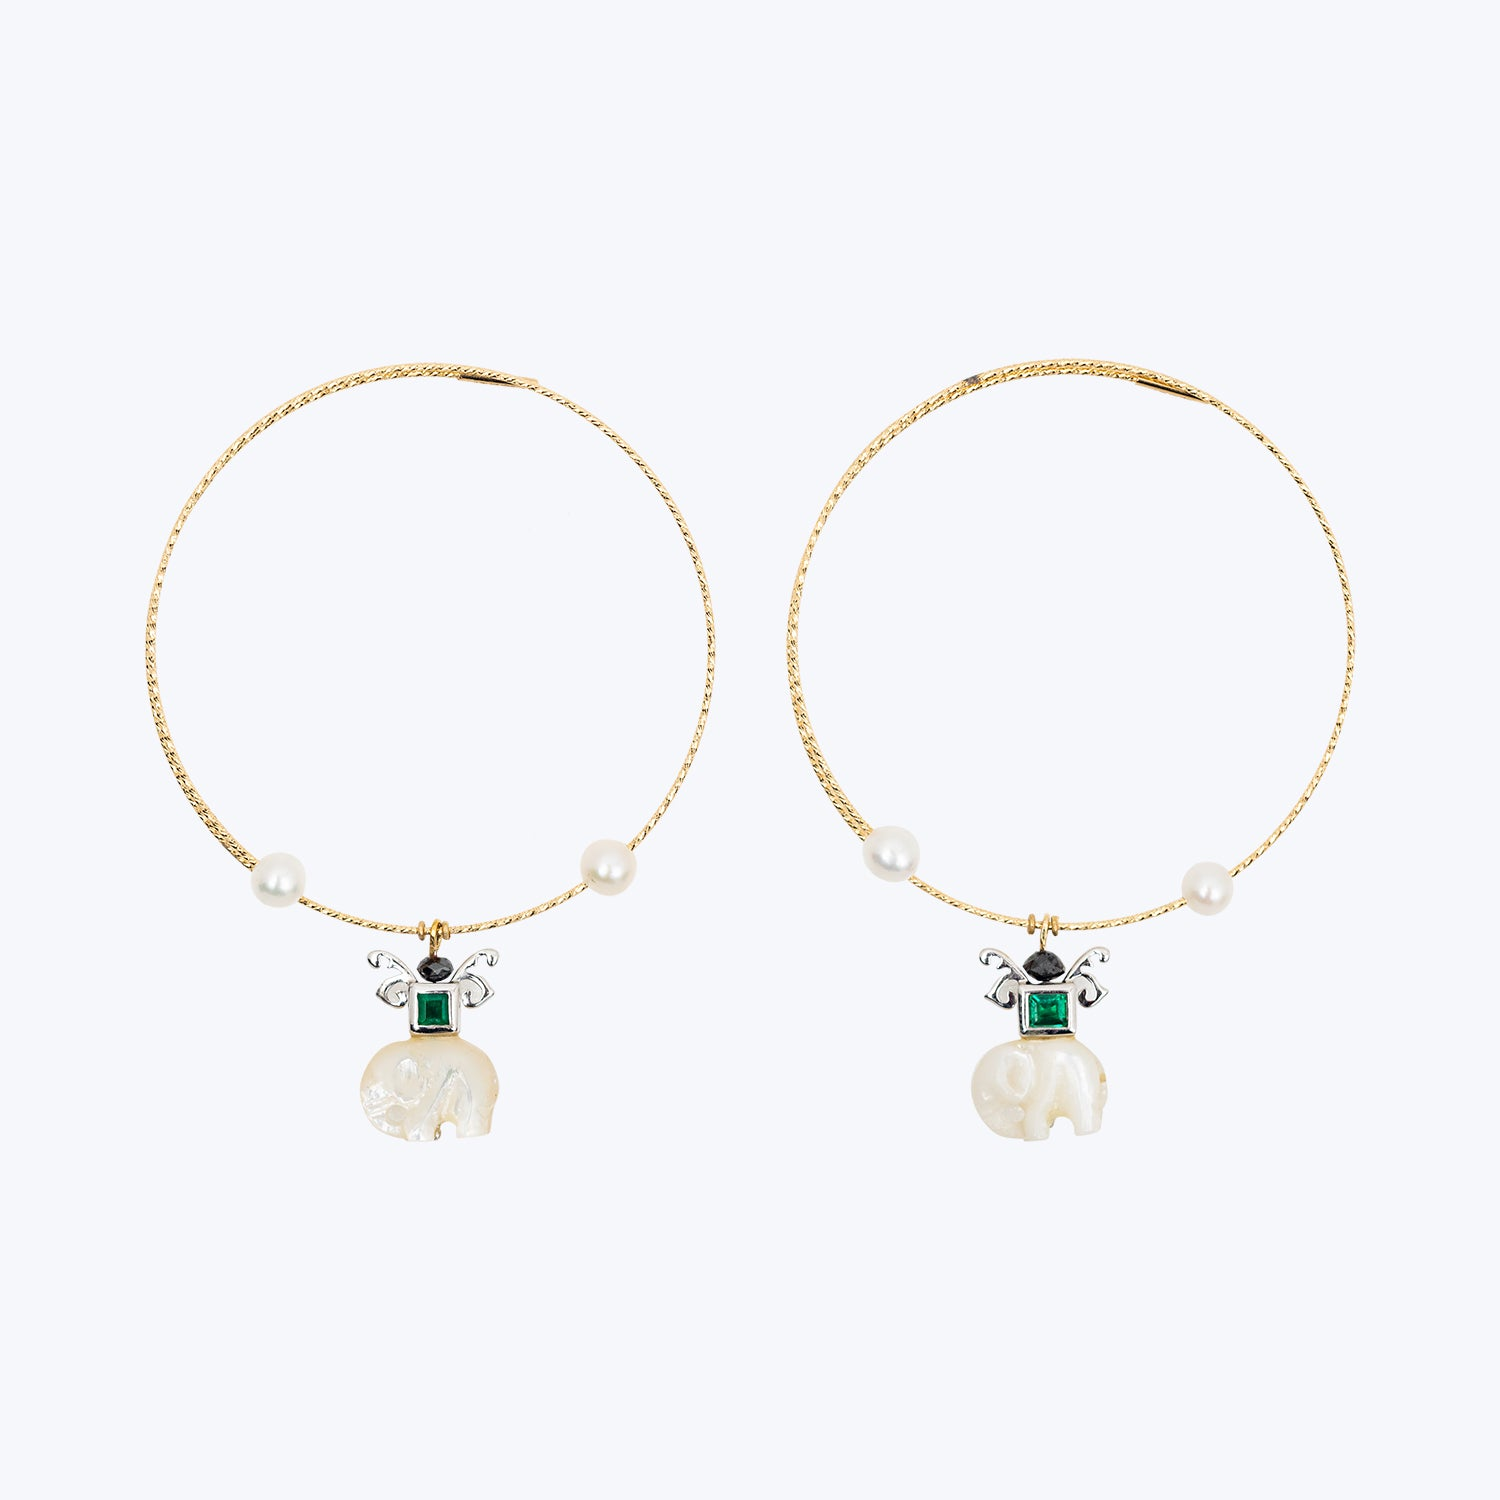 18K Yellow Gold Earrings with Carved Mother of Pearl Elephant, Emerald and Pearl